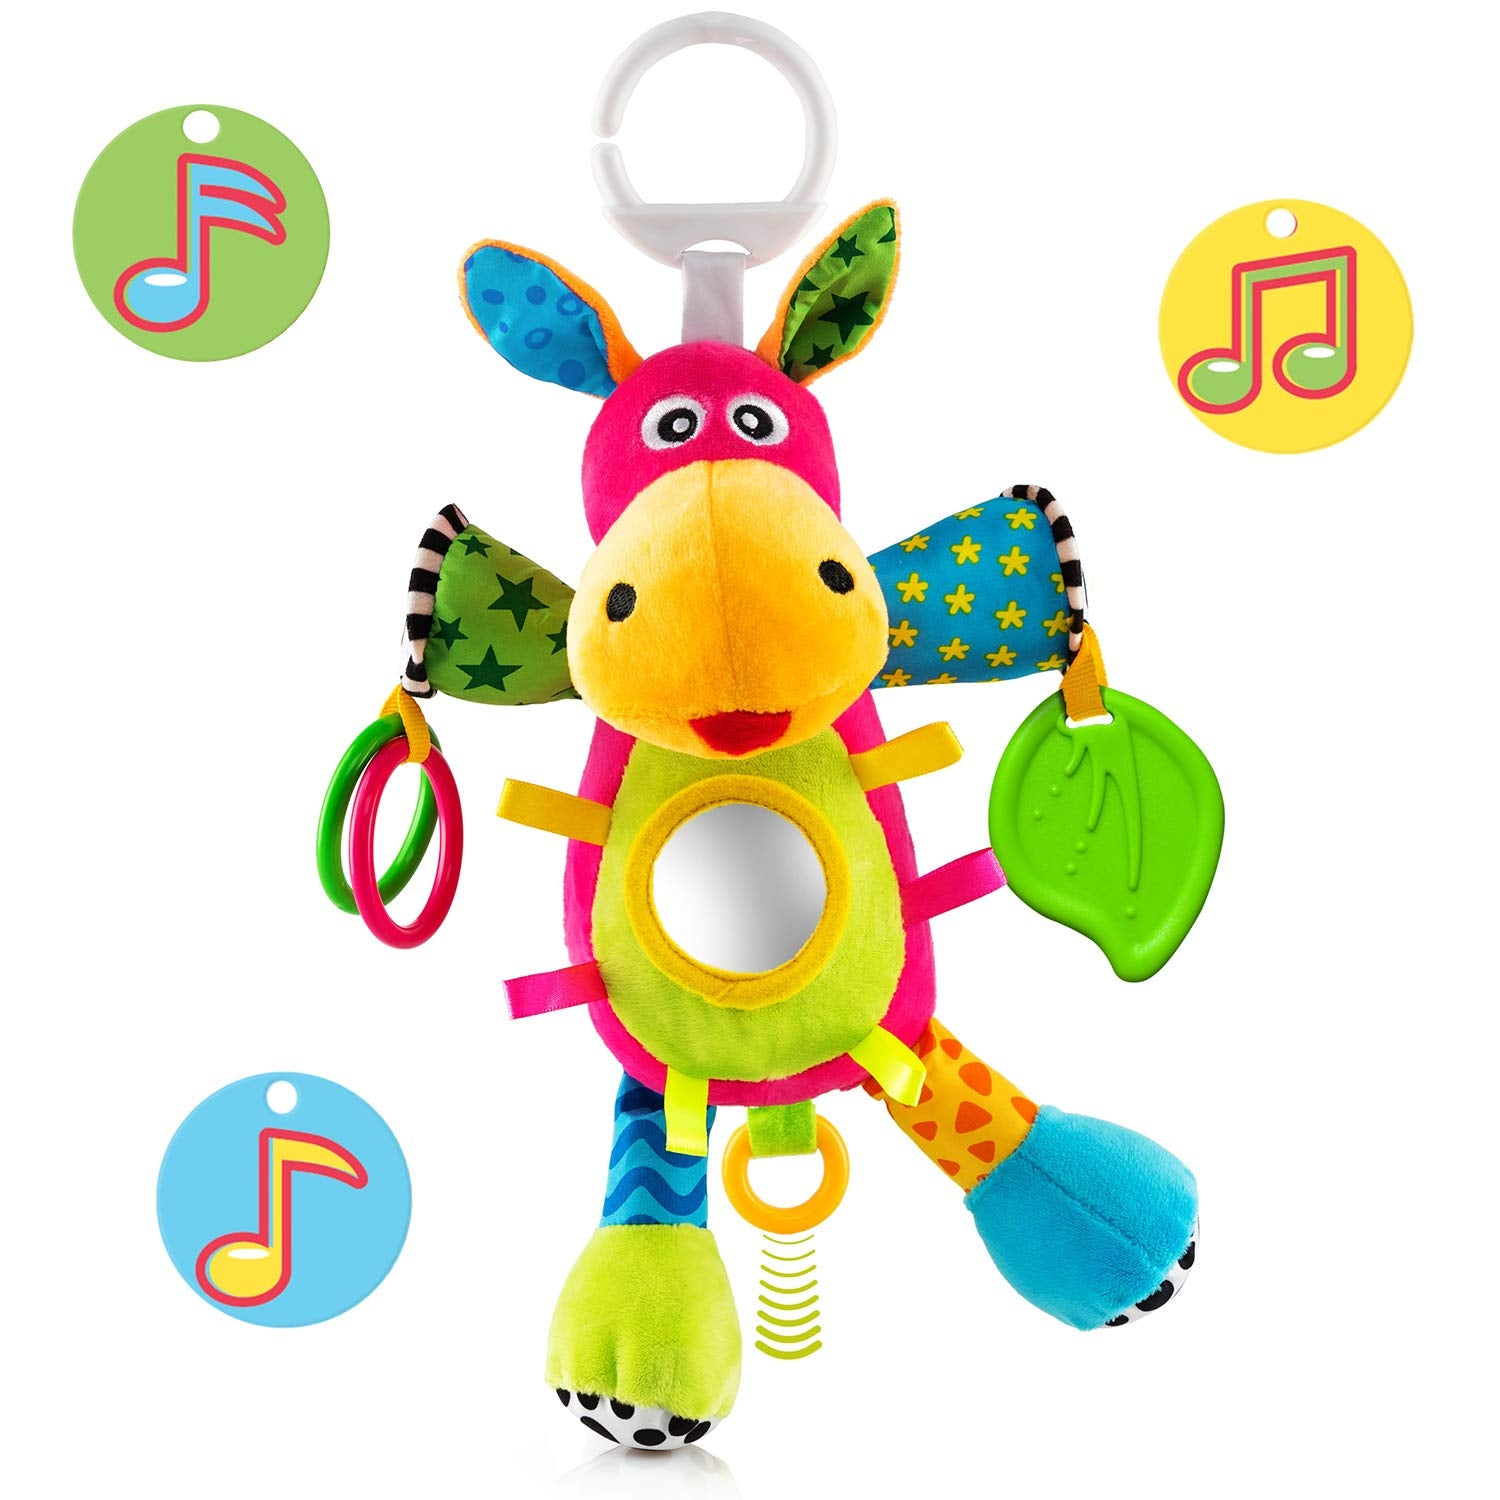 OKIKI Donkey Plush Stuffed Infant Toy, Baby Development Toys with Musical Box, Squeaky Feet, Kids Mirror, BPA Free Teether - Stroller, Crib, Carseat Baby Toys - wiihuu